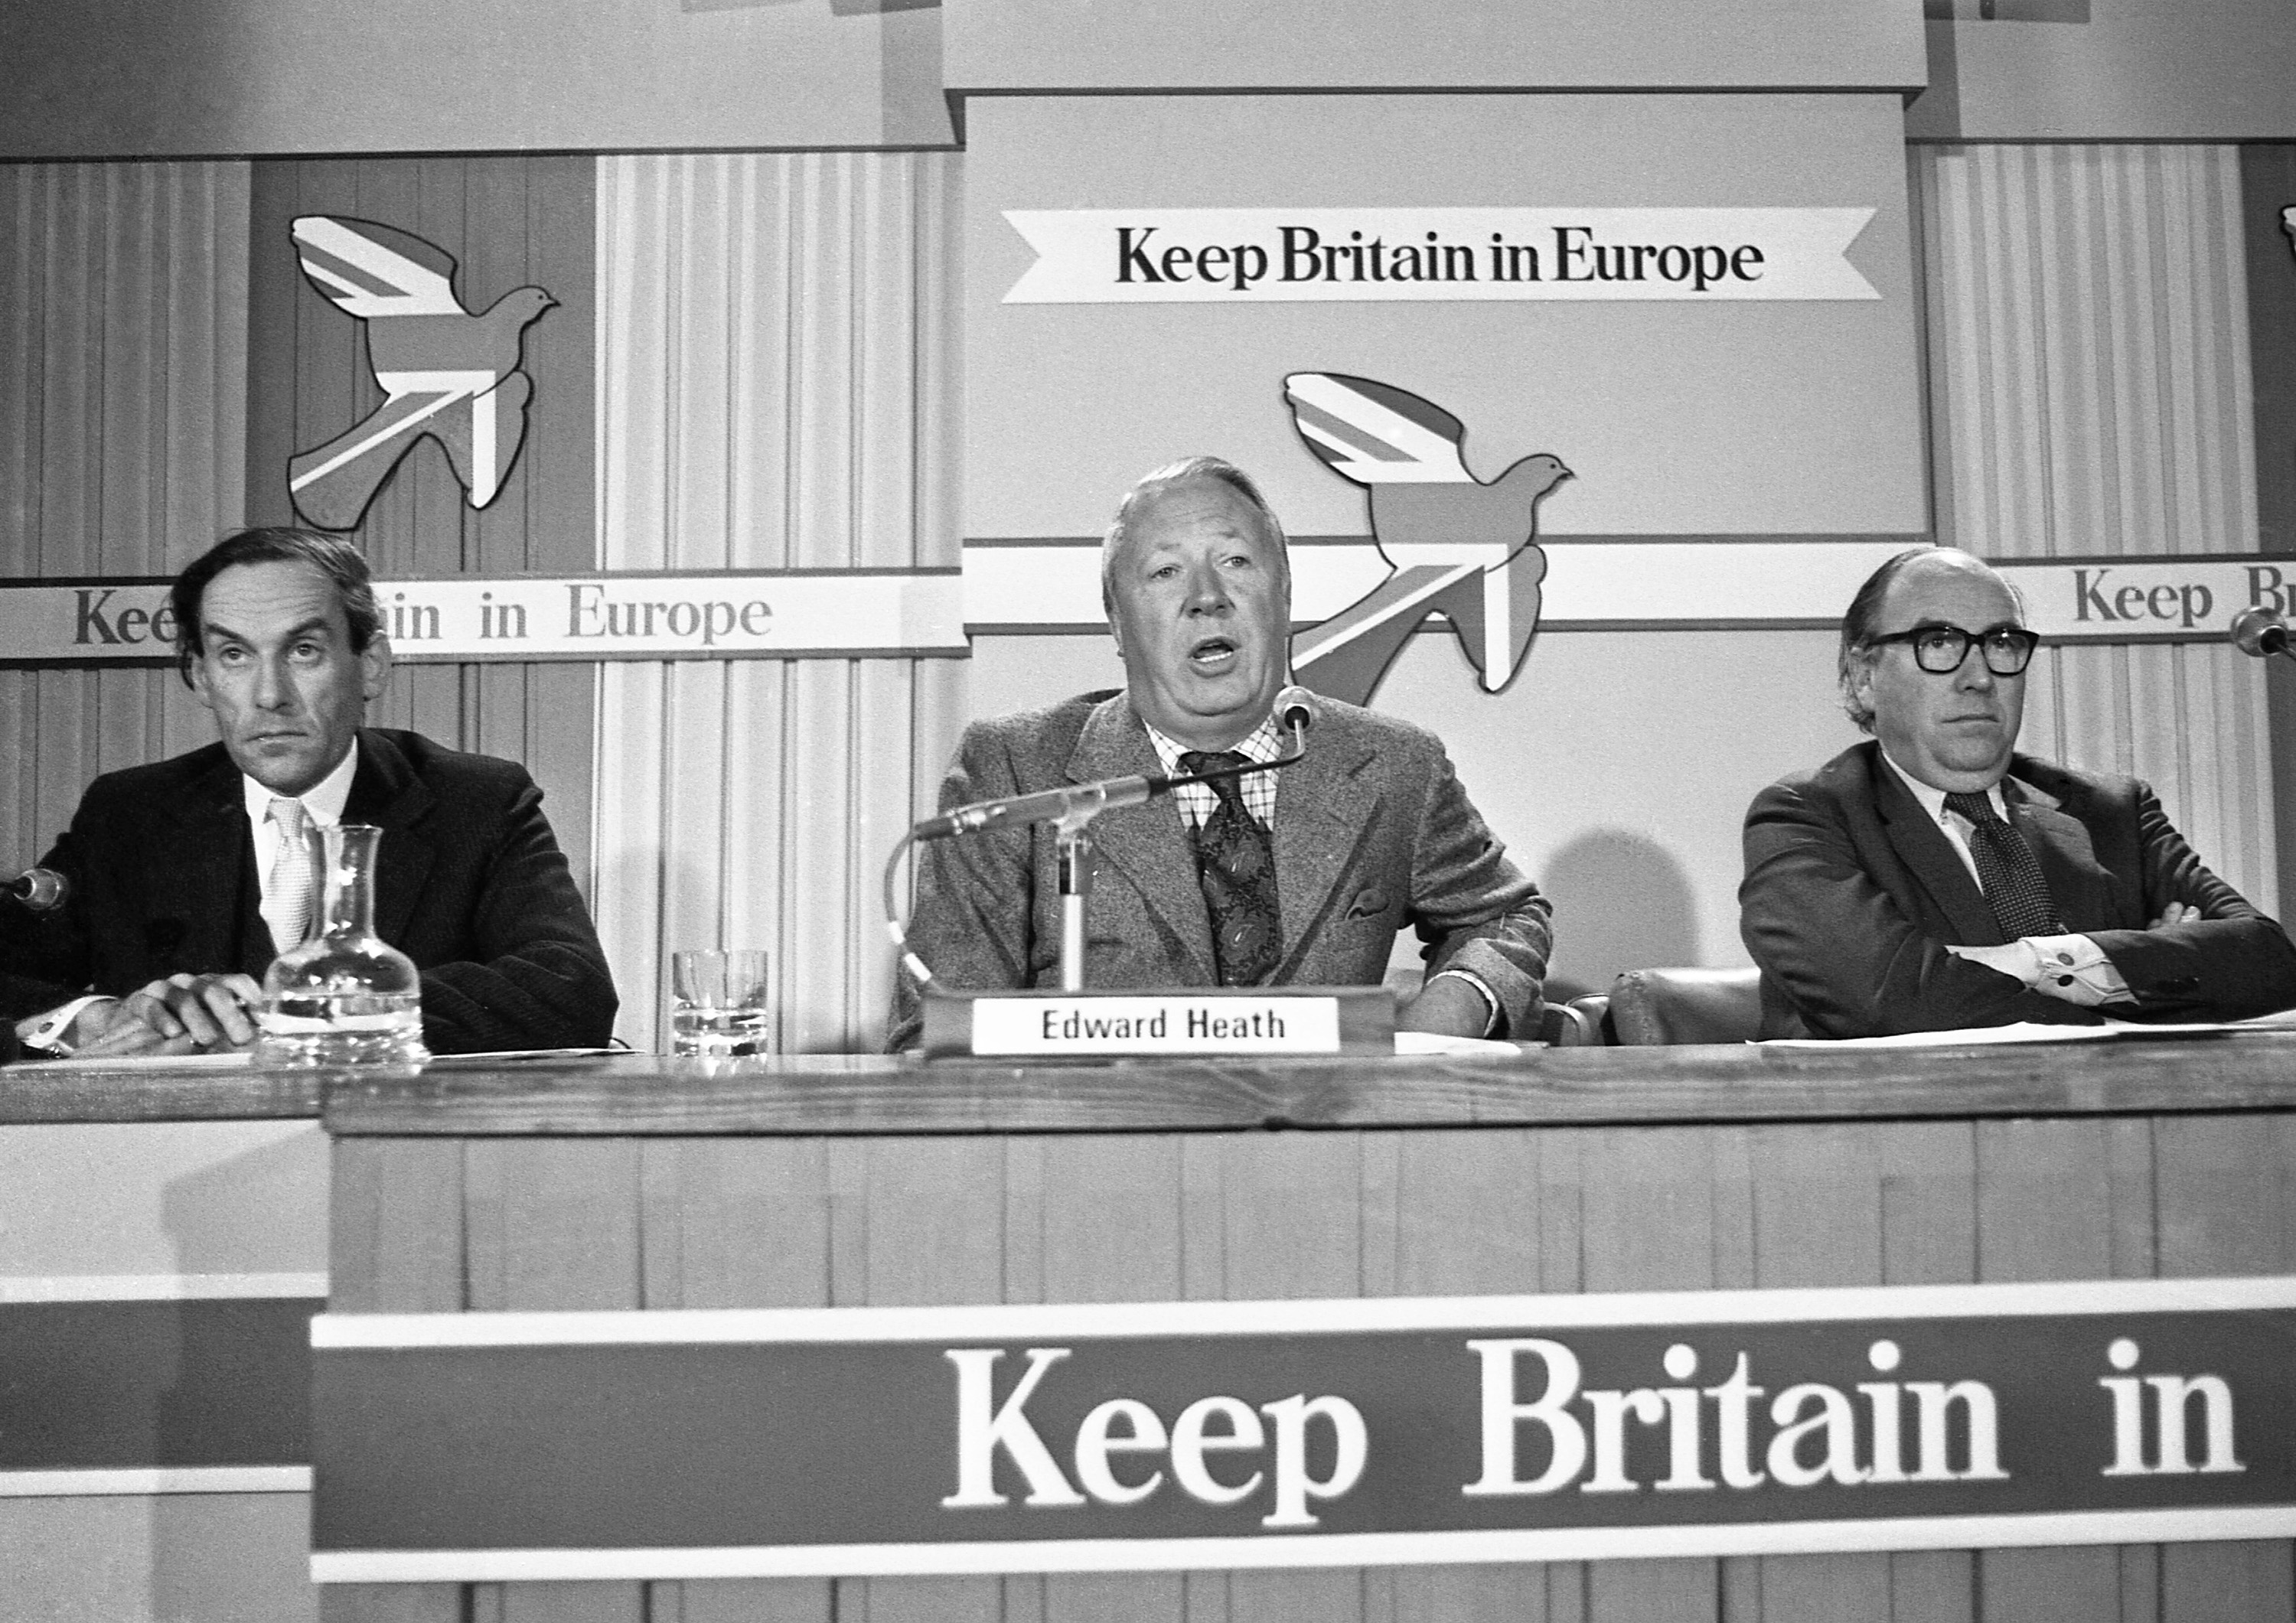 Concerning Brexit, Britain cannot escape its history and geography